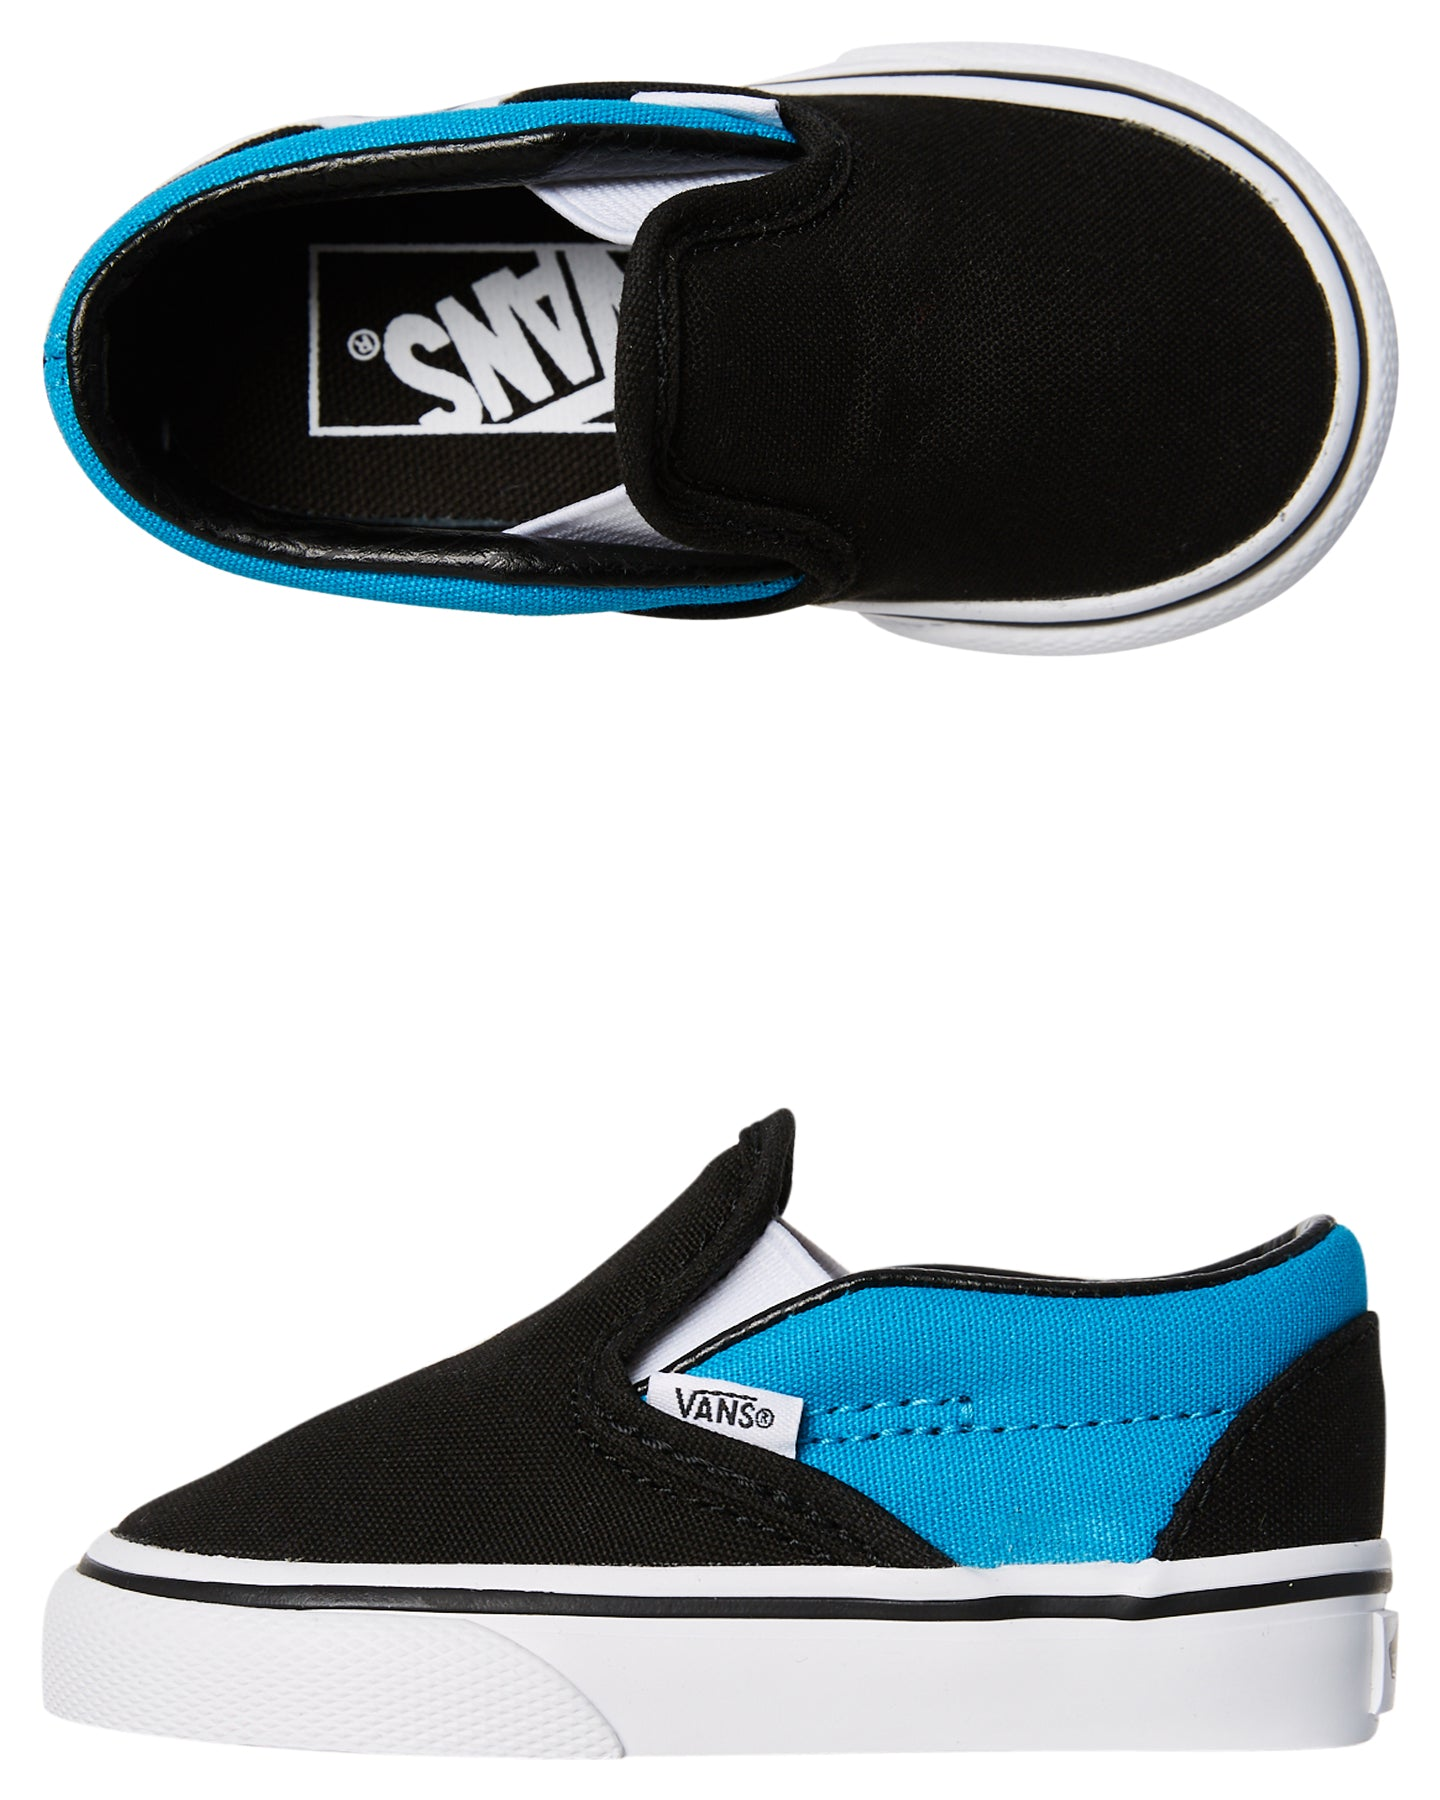 Vans Classic Slip On Black/Vivid Blue Skate Shoes Size 9 Toddler